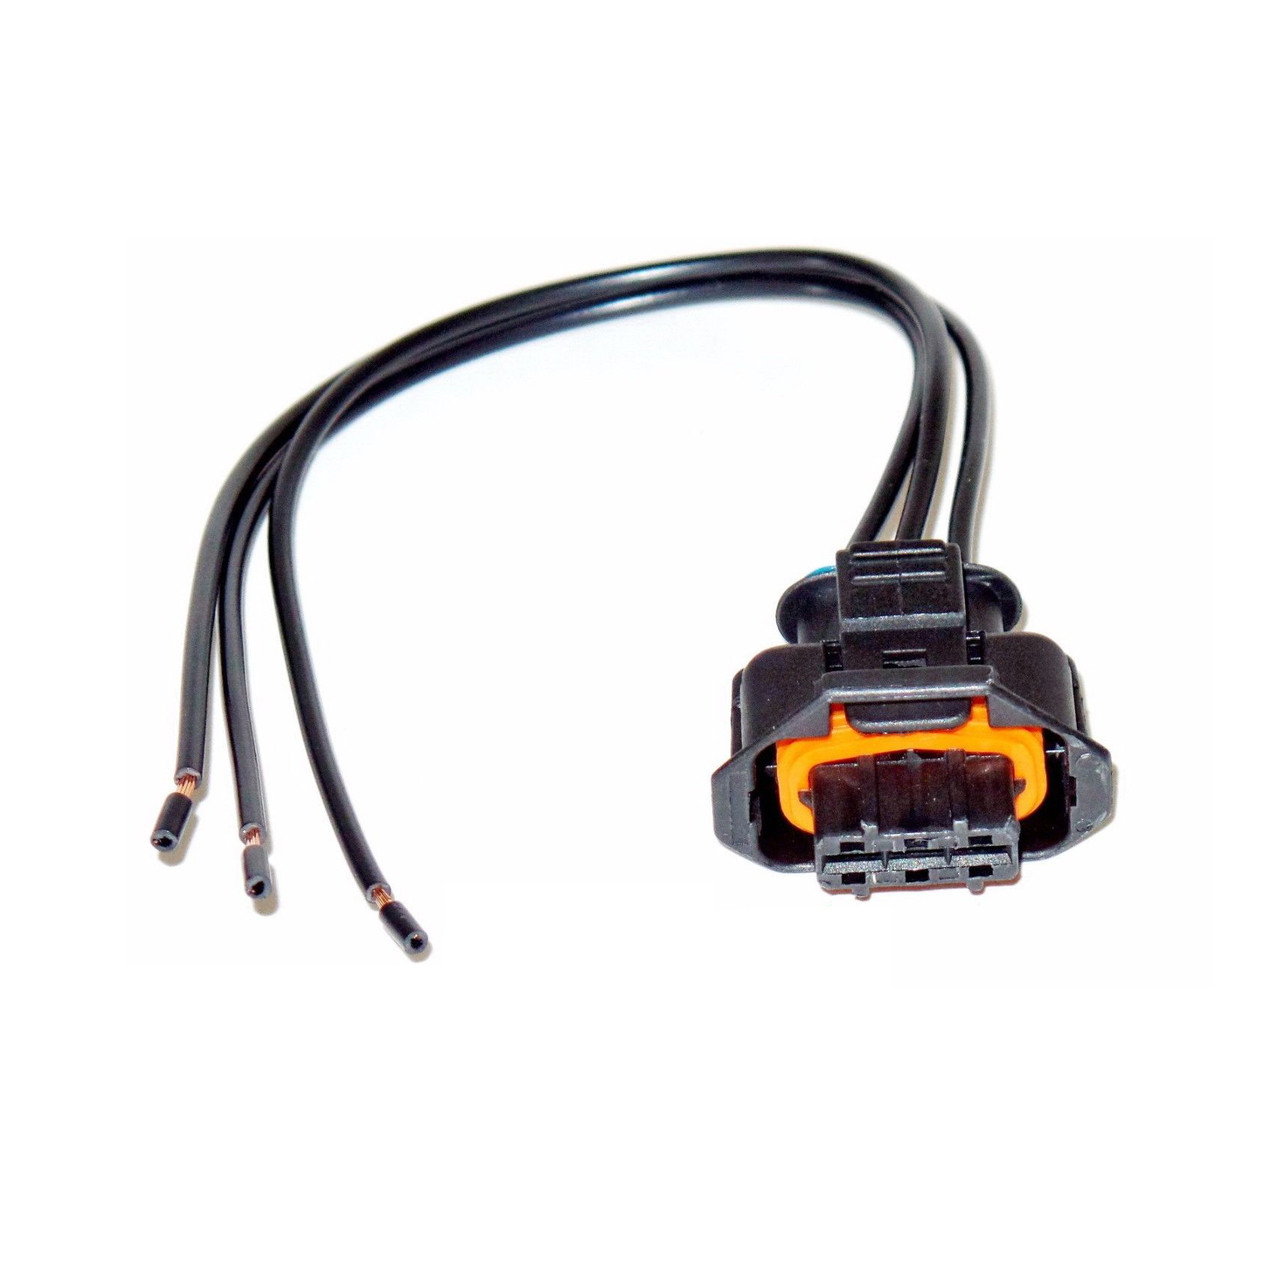 medium resolution of gm ls3 map sensor wiring diagram wiring library map sensor connector harness pigtail for 2008 2013